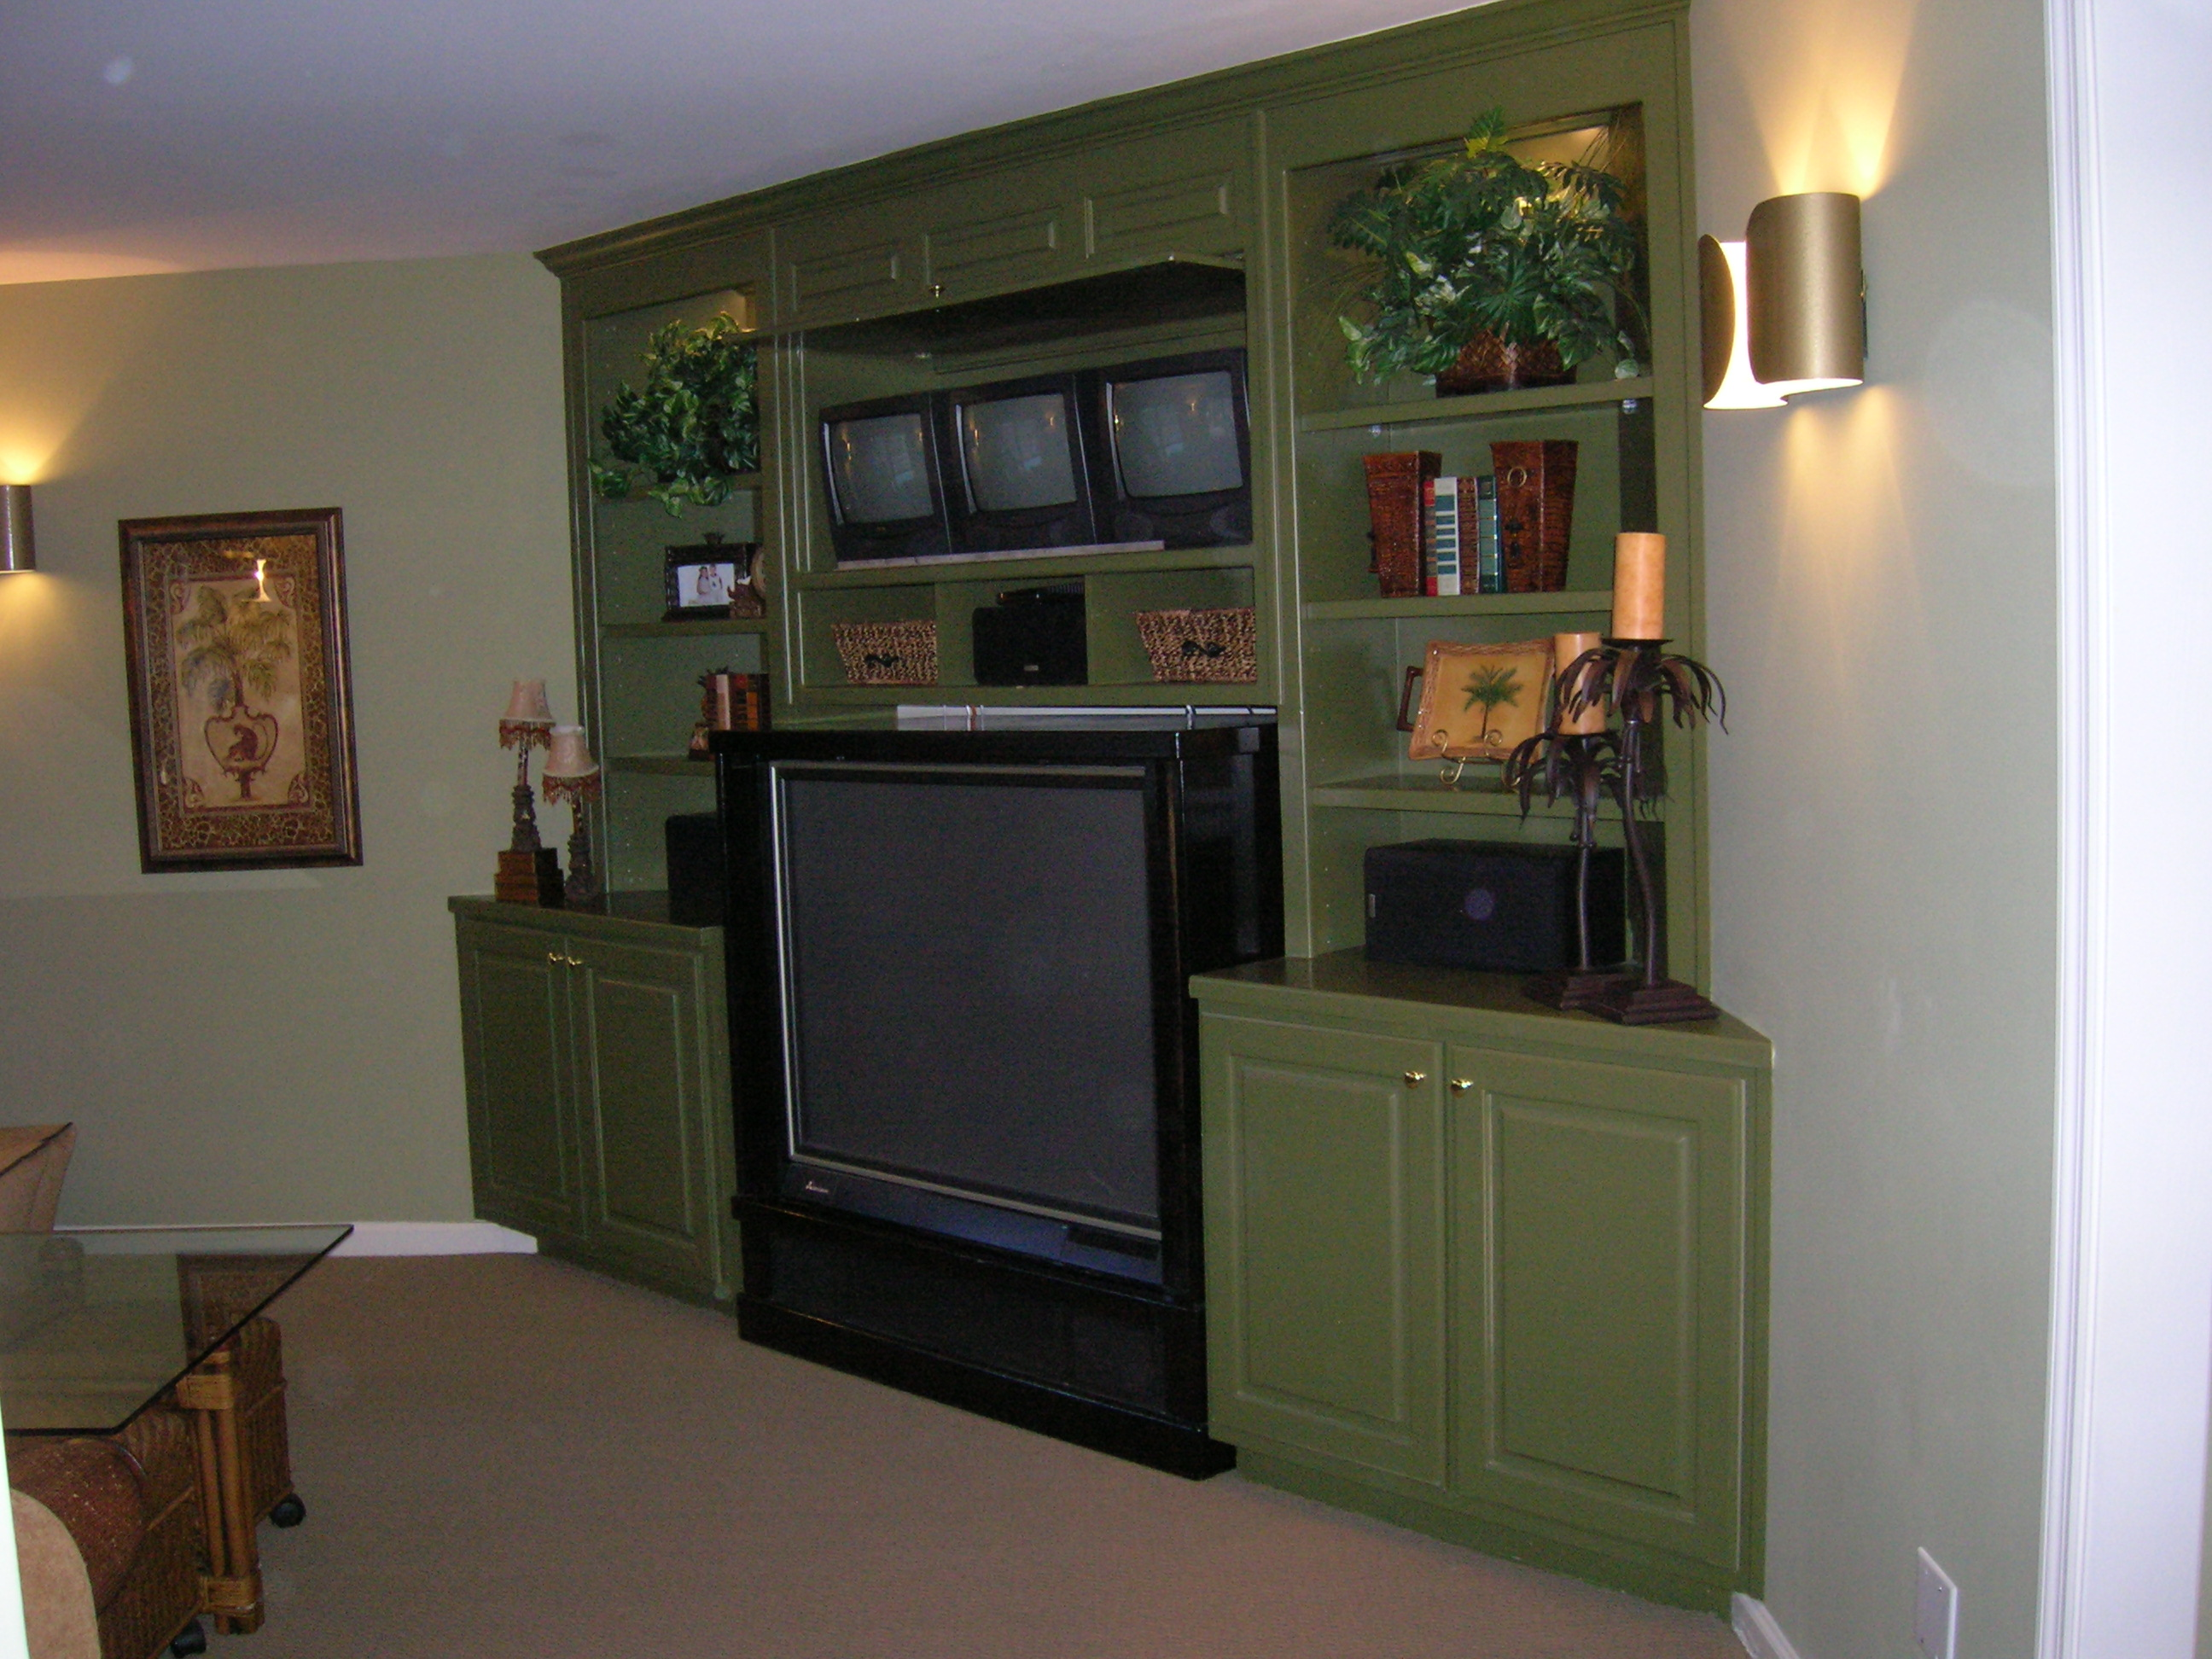 Kitchen Cabinets Entertainment Center building a shelf or entertainment center - advice? (fireplace